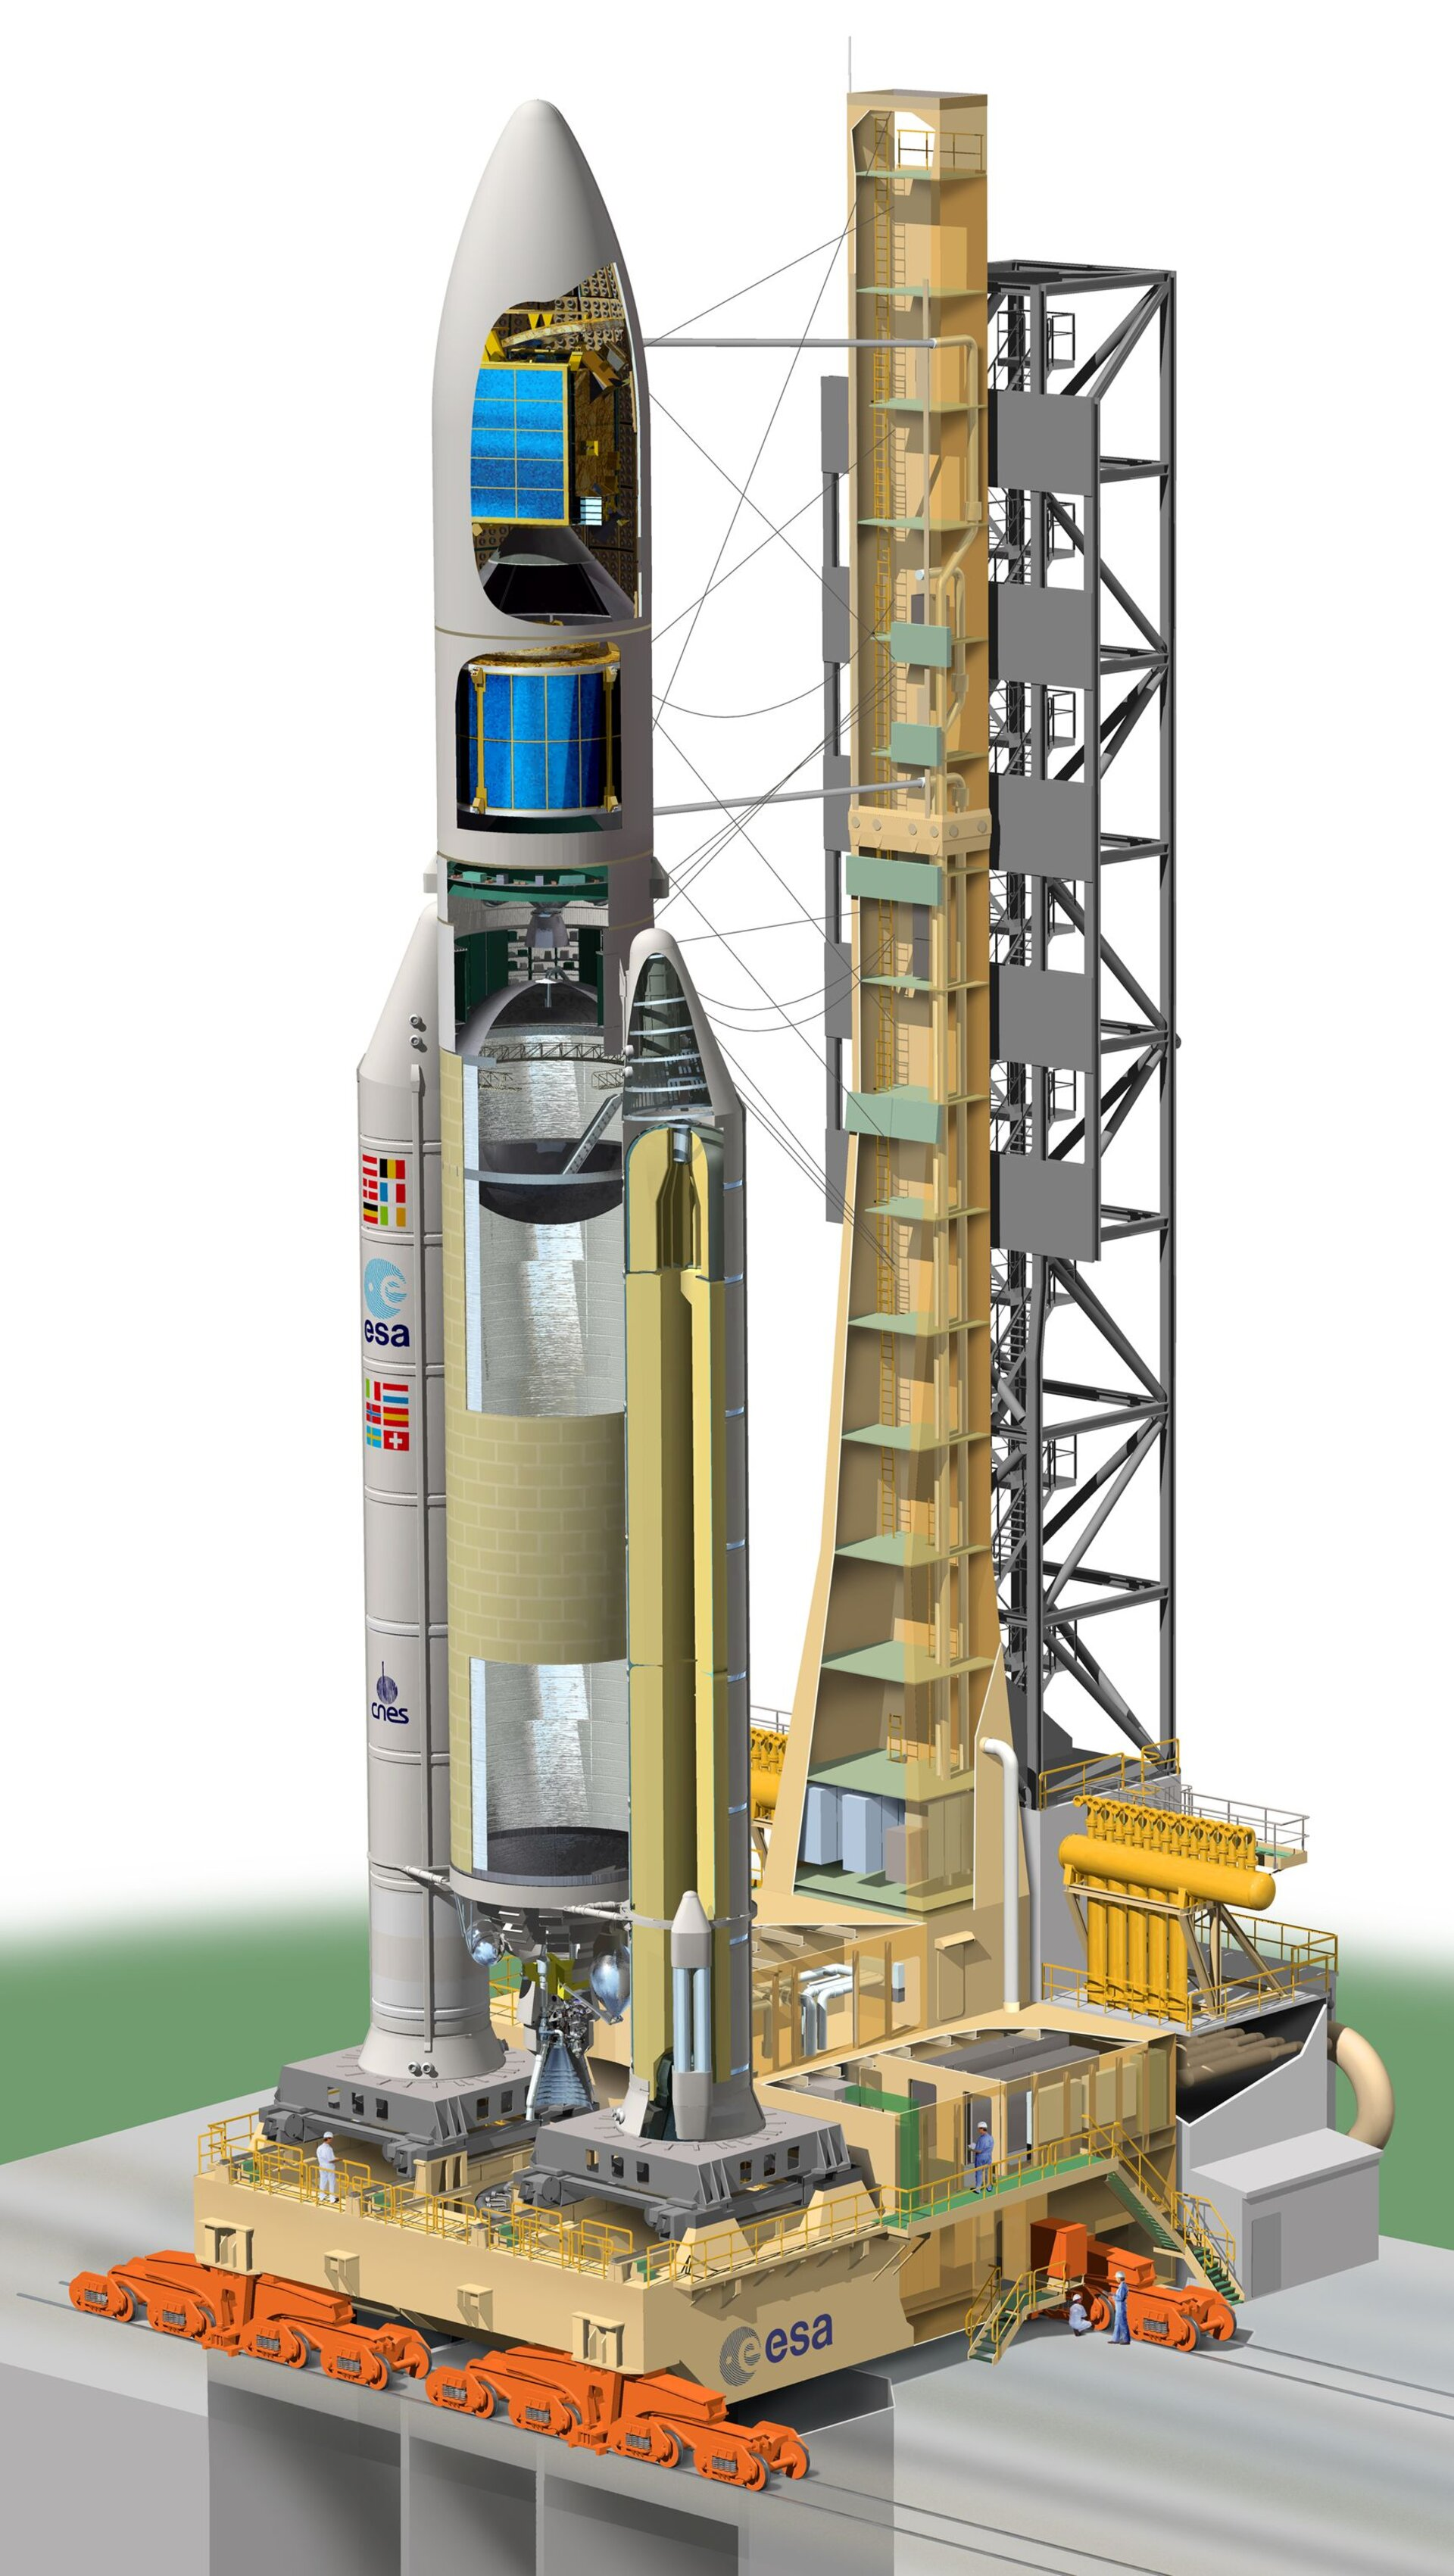 Cut open view of Ariane 5 on the launch pad